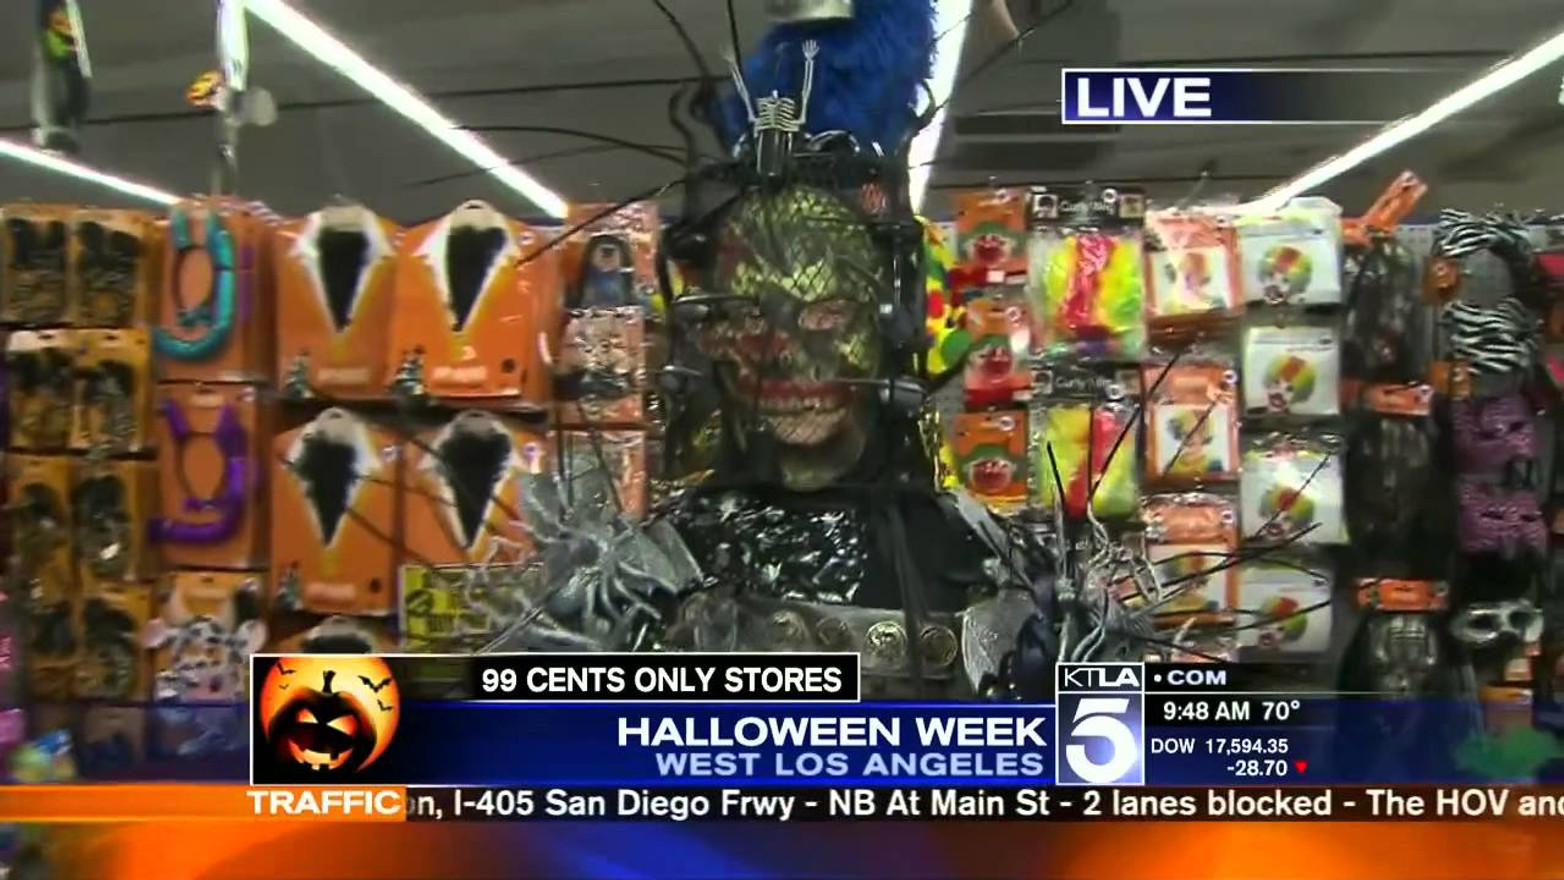 KTLA Halloween Special - 99 Cents Only Stores Costume Design